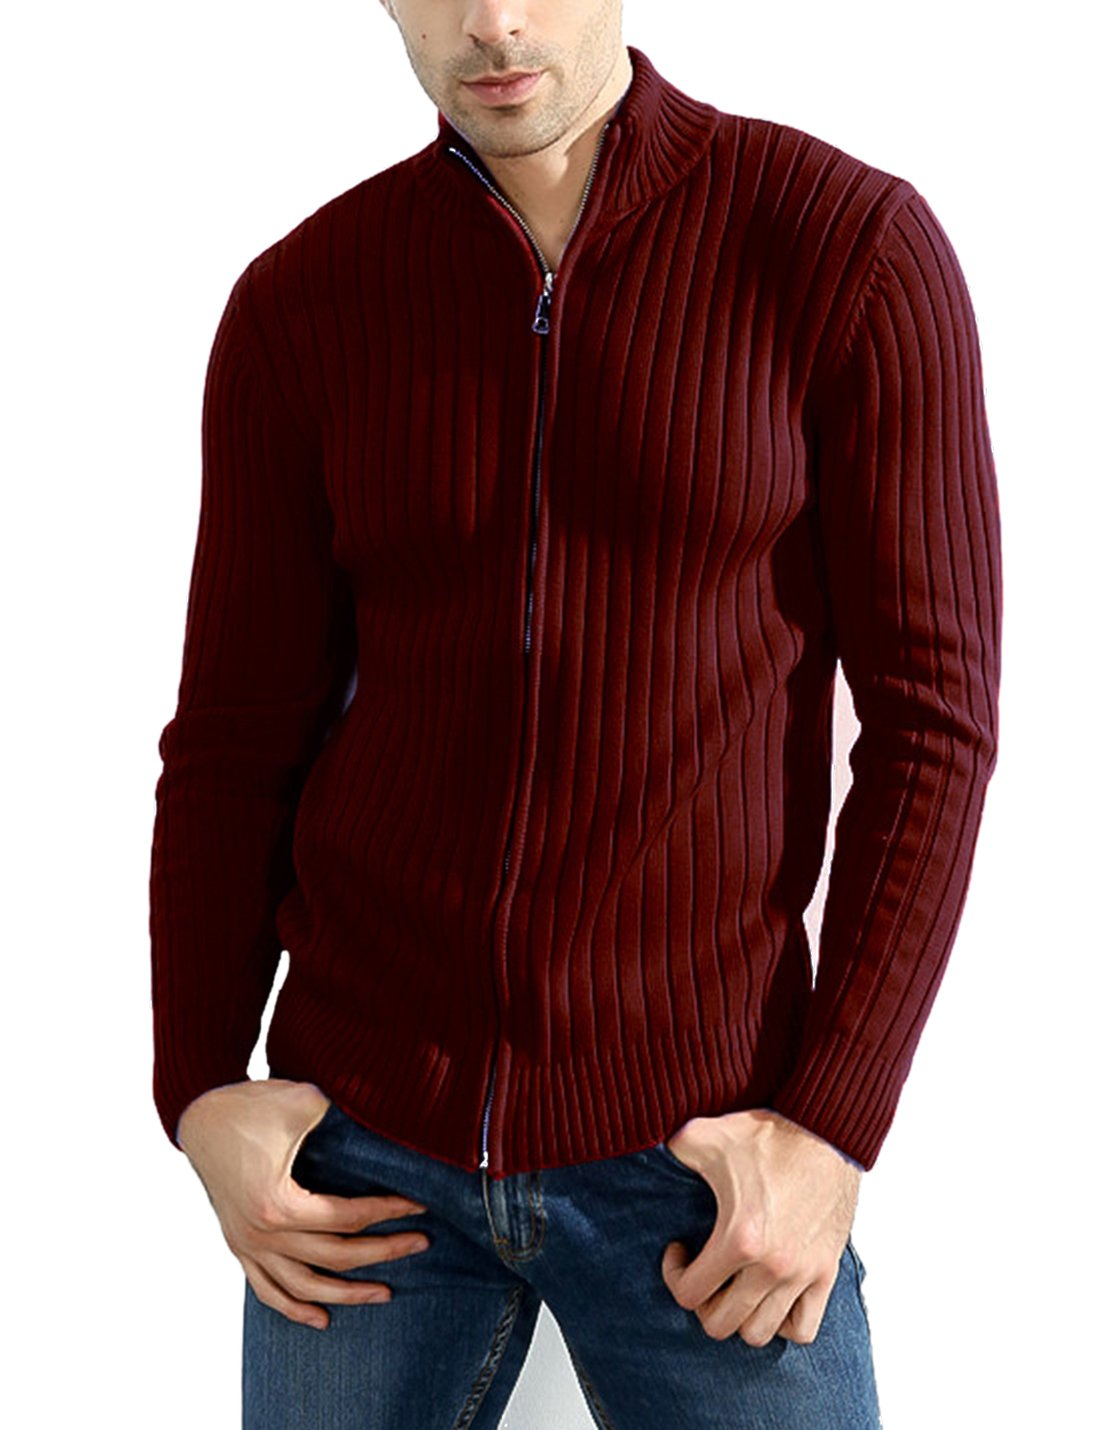 Lentta Men's Long Sleeve Stand Collar Full Zip up Solid Cotton Cardigan Sweater (X-Small, Wine Red)